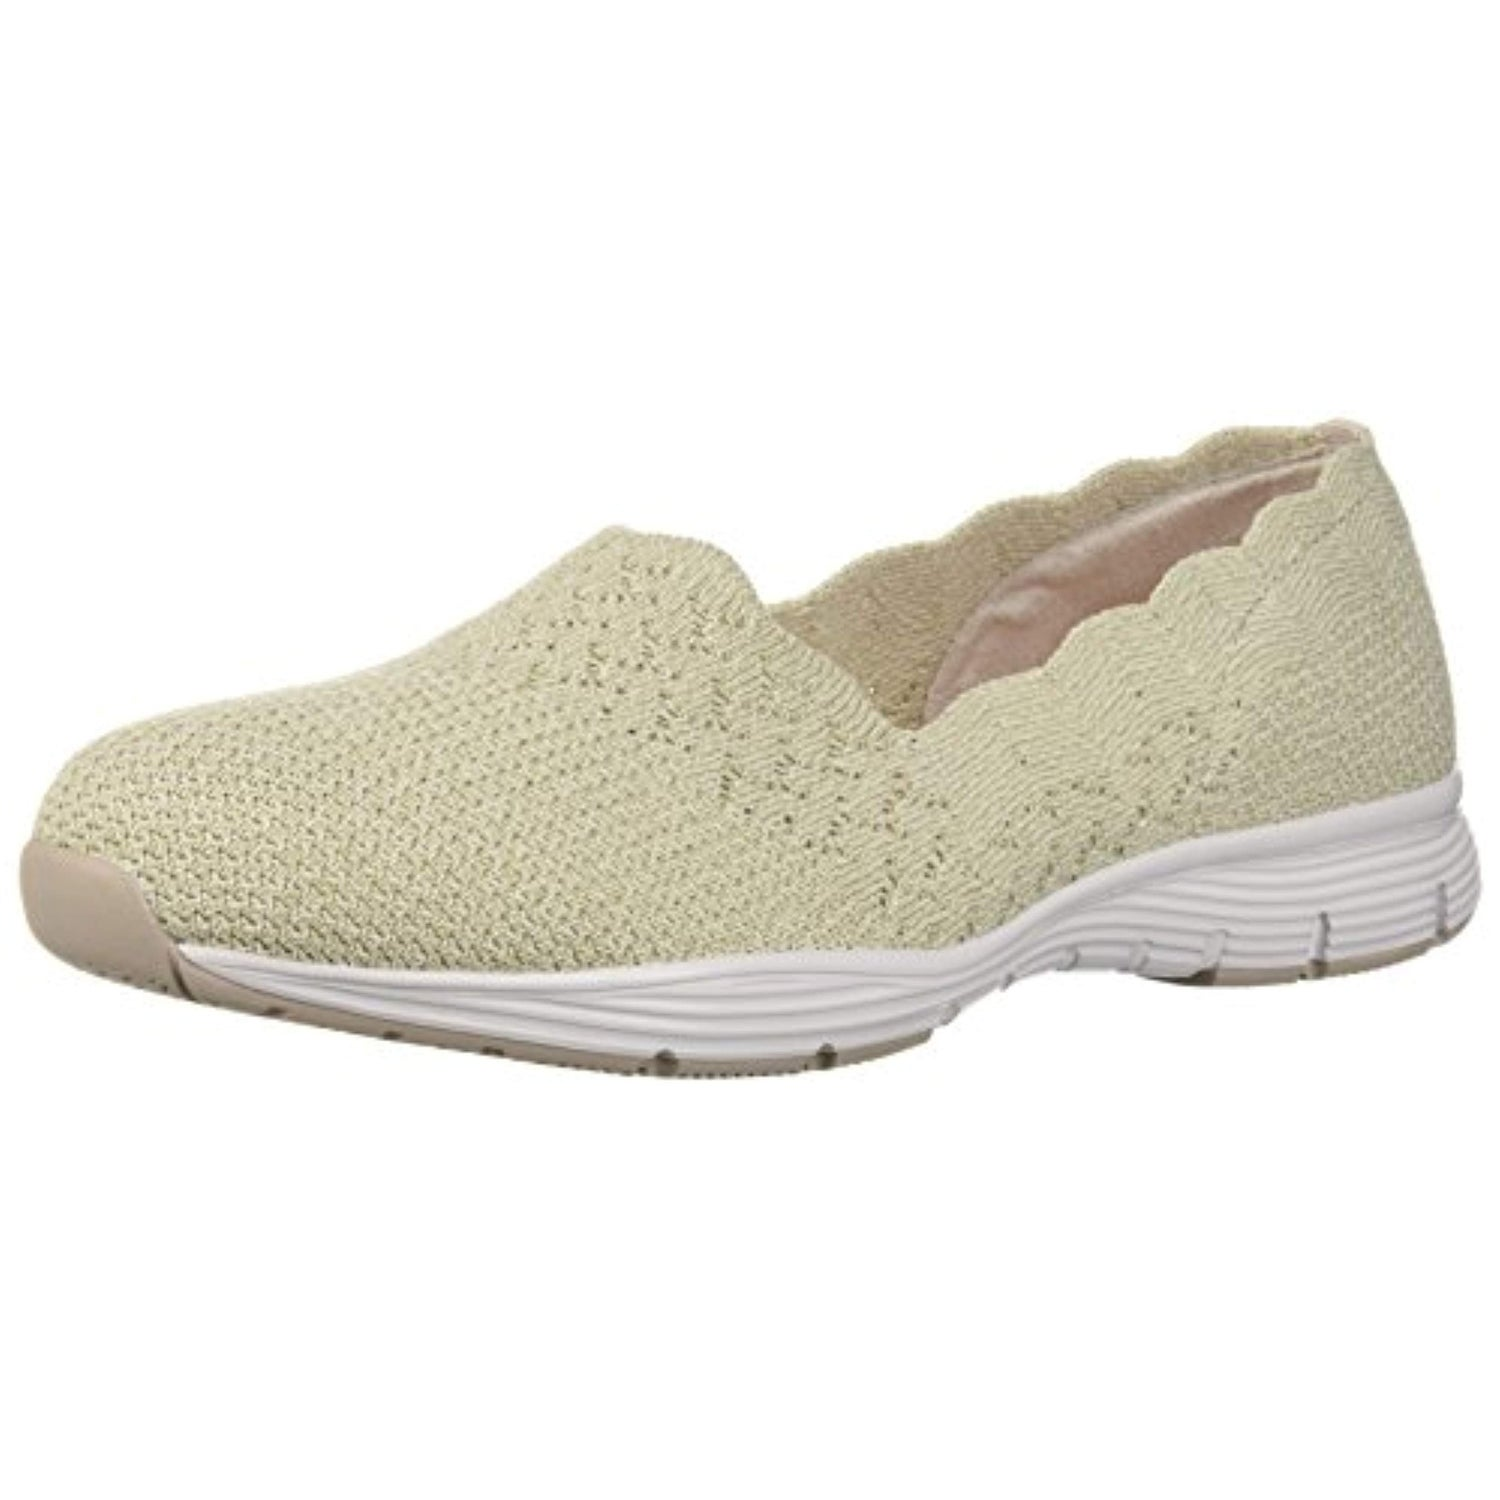 Skechers Women's Seager STAT Scalloped Collar, Engineered Skech Knit Slip On Classic Fit Loafer, Natural, 6.5 M US